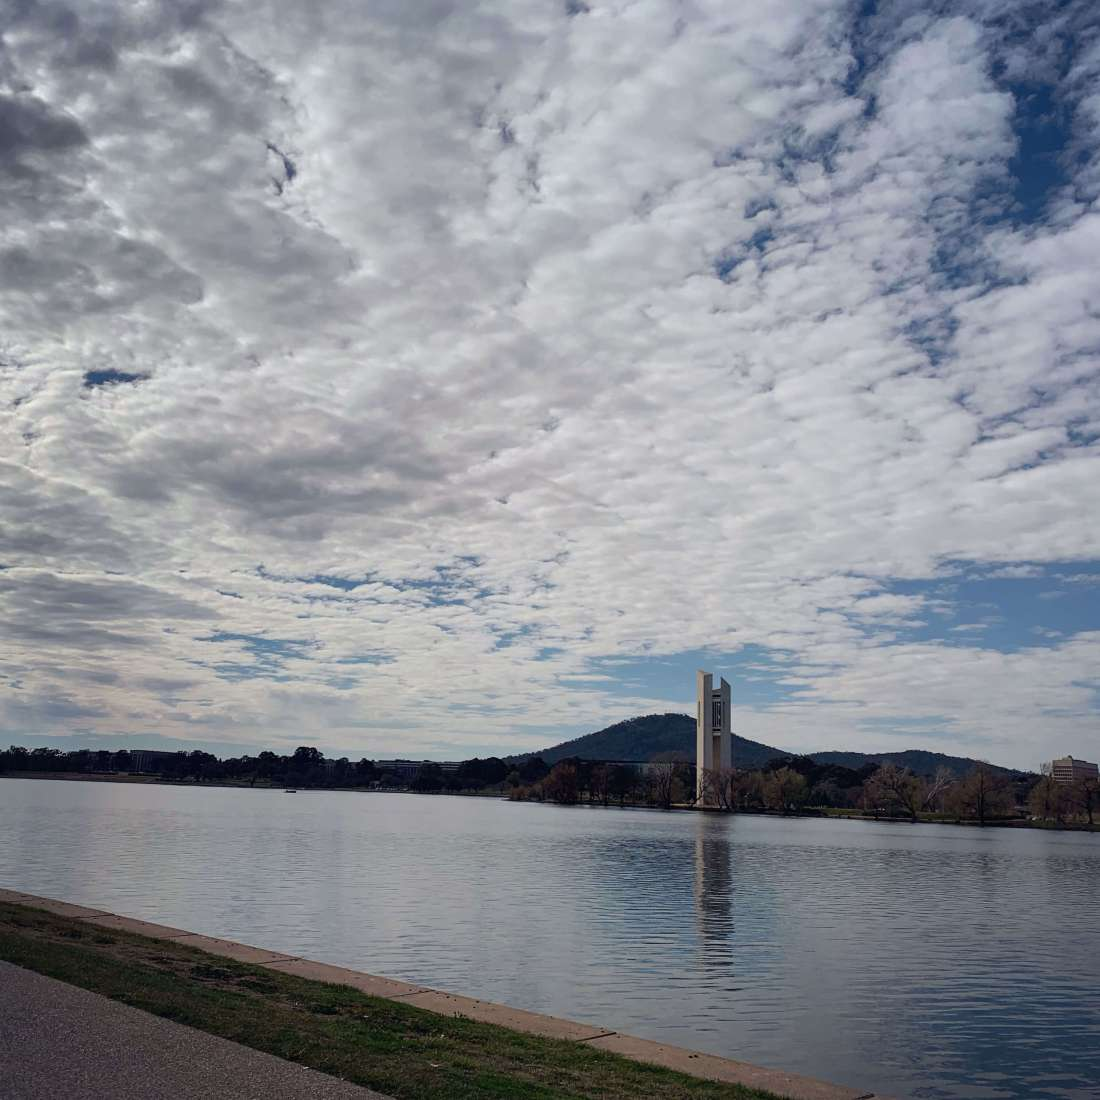 Carillon by the lake Burley Griffin, Canberra